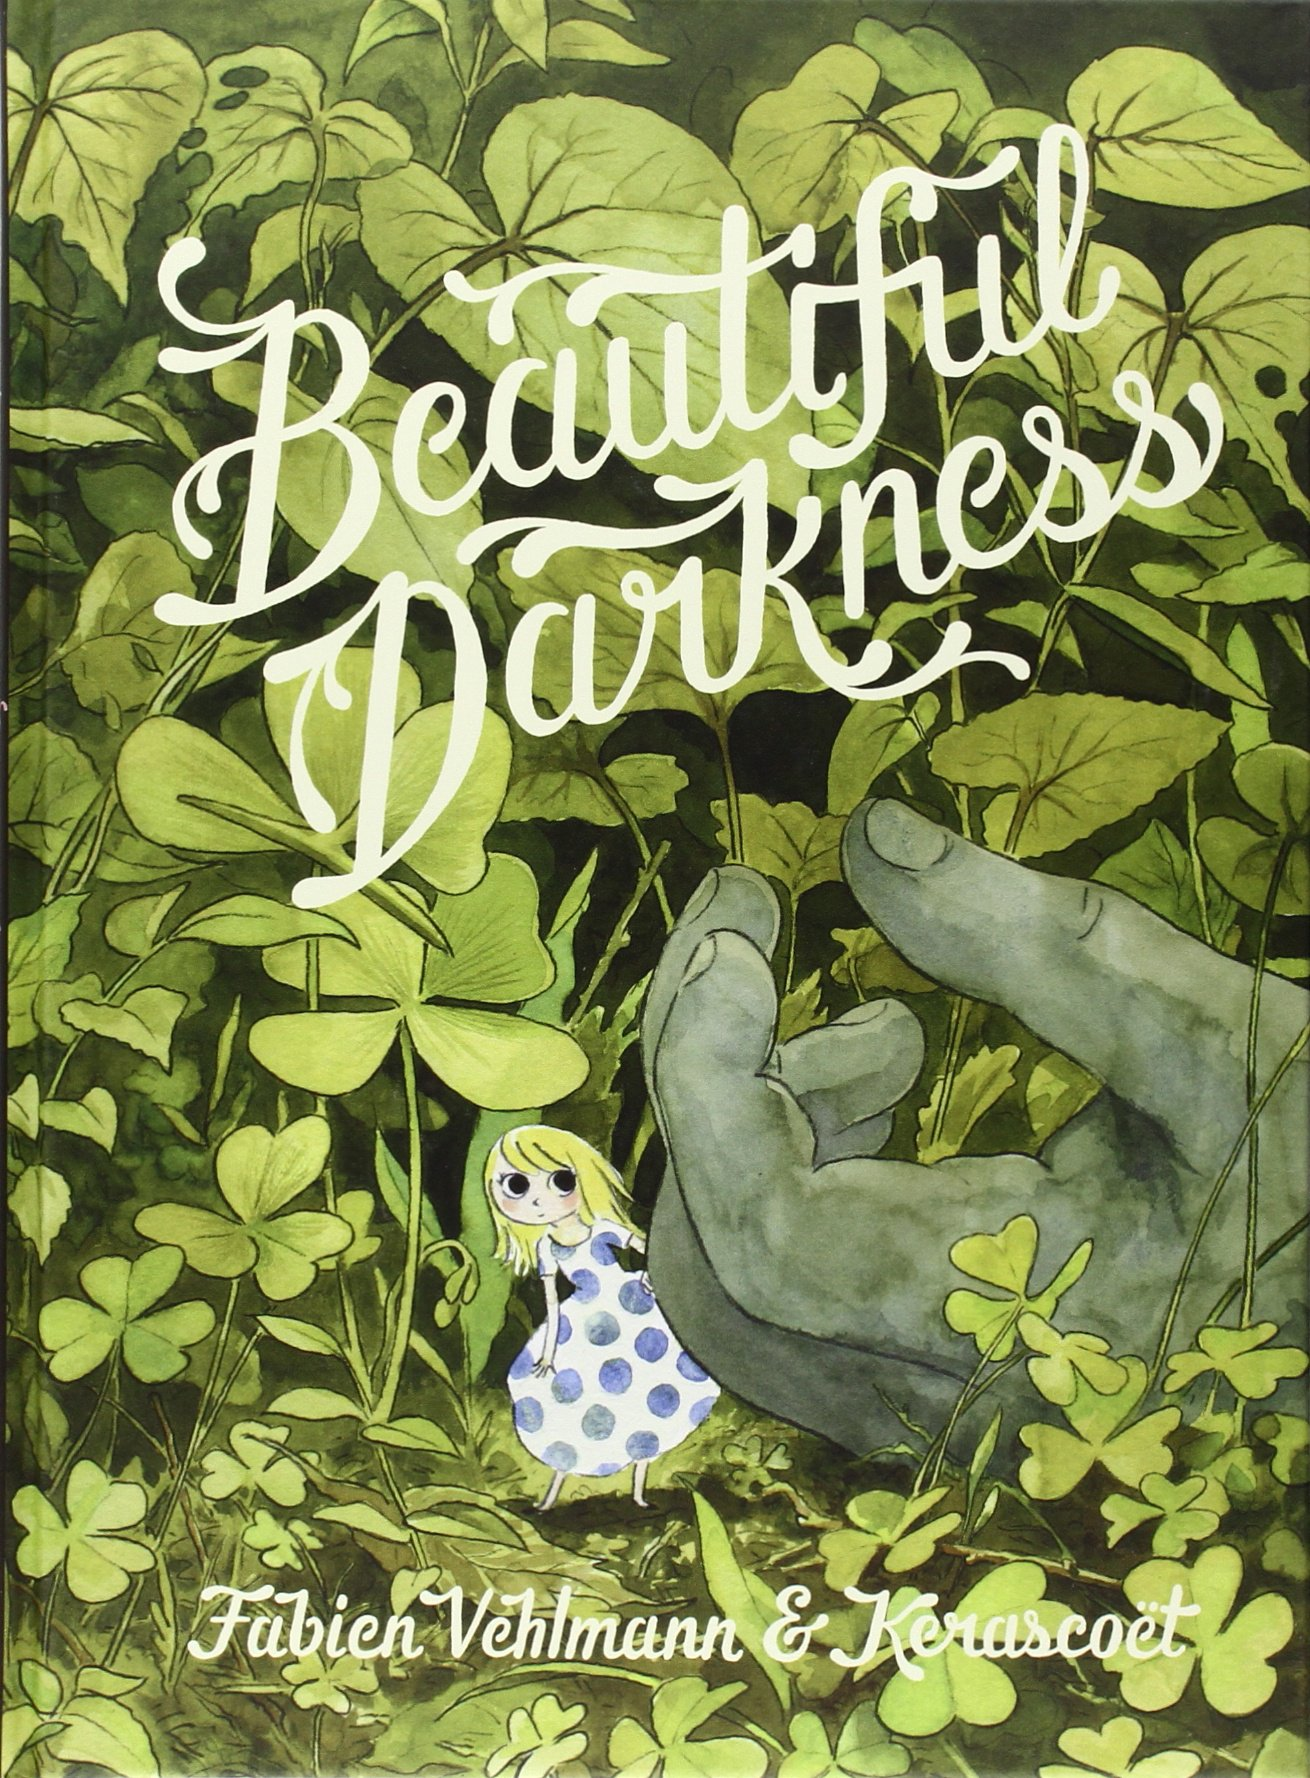 Image result for beautiful darkness